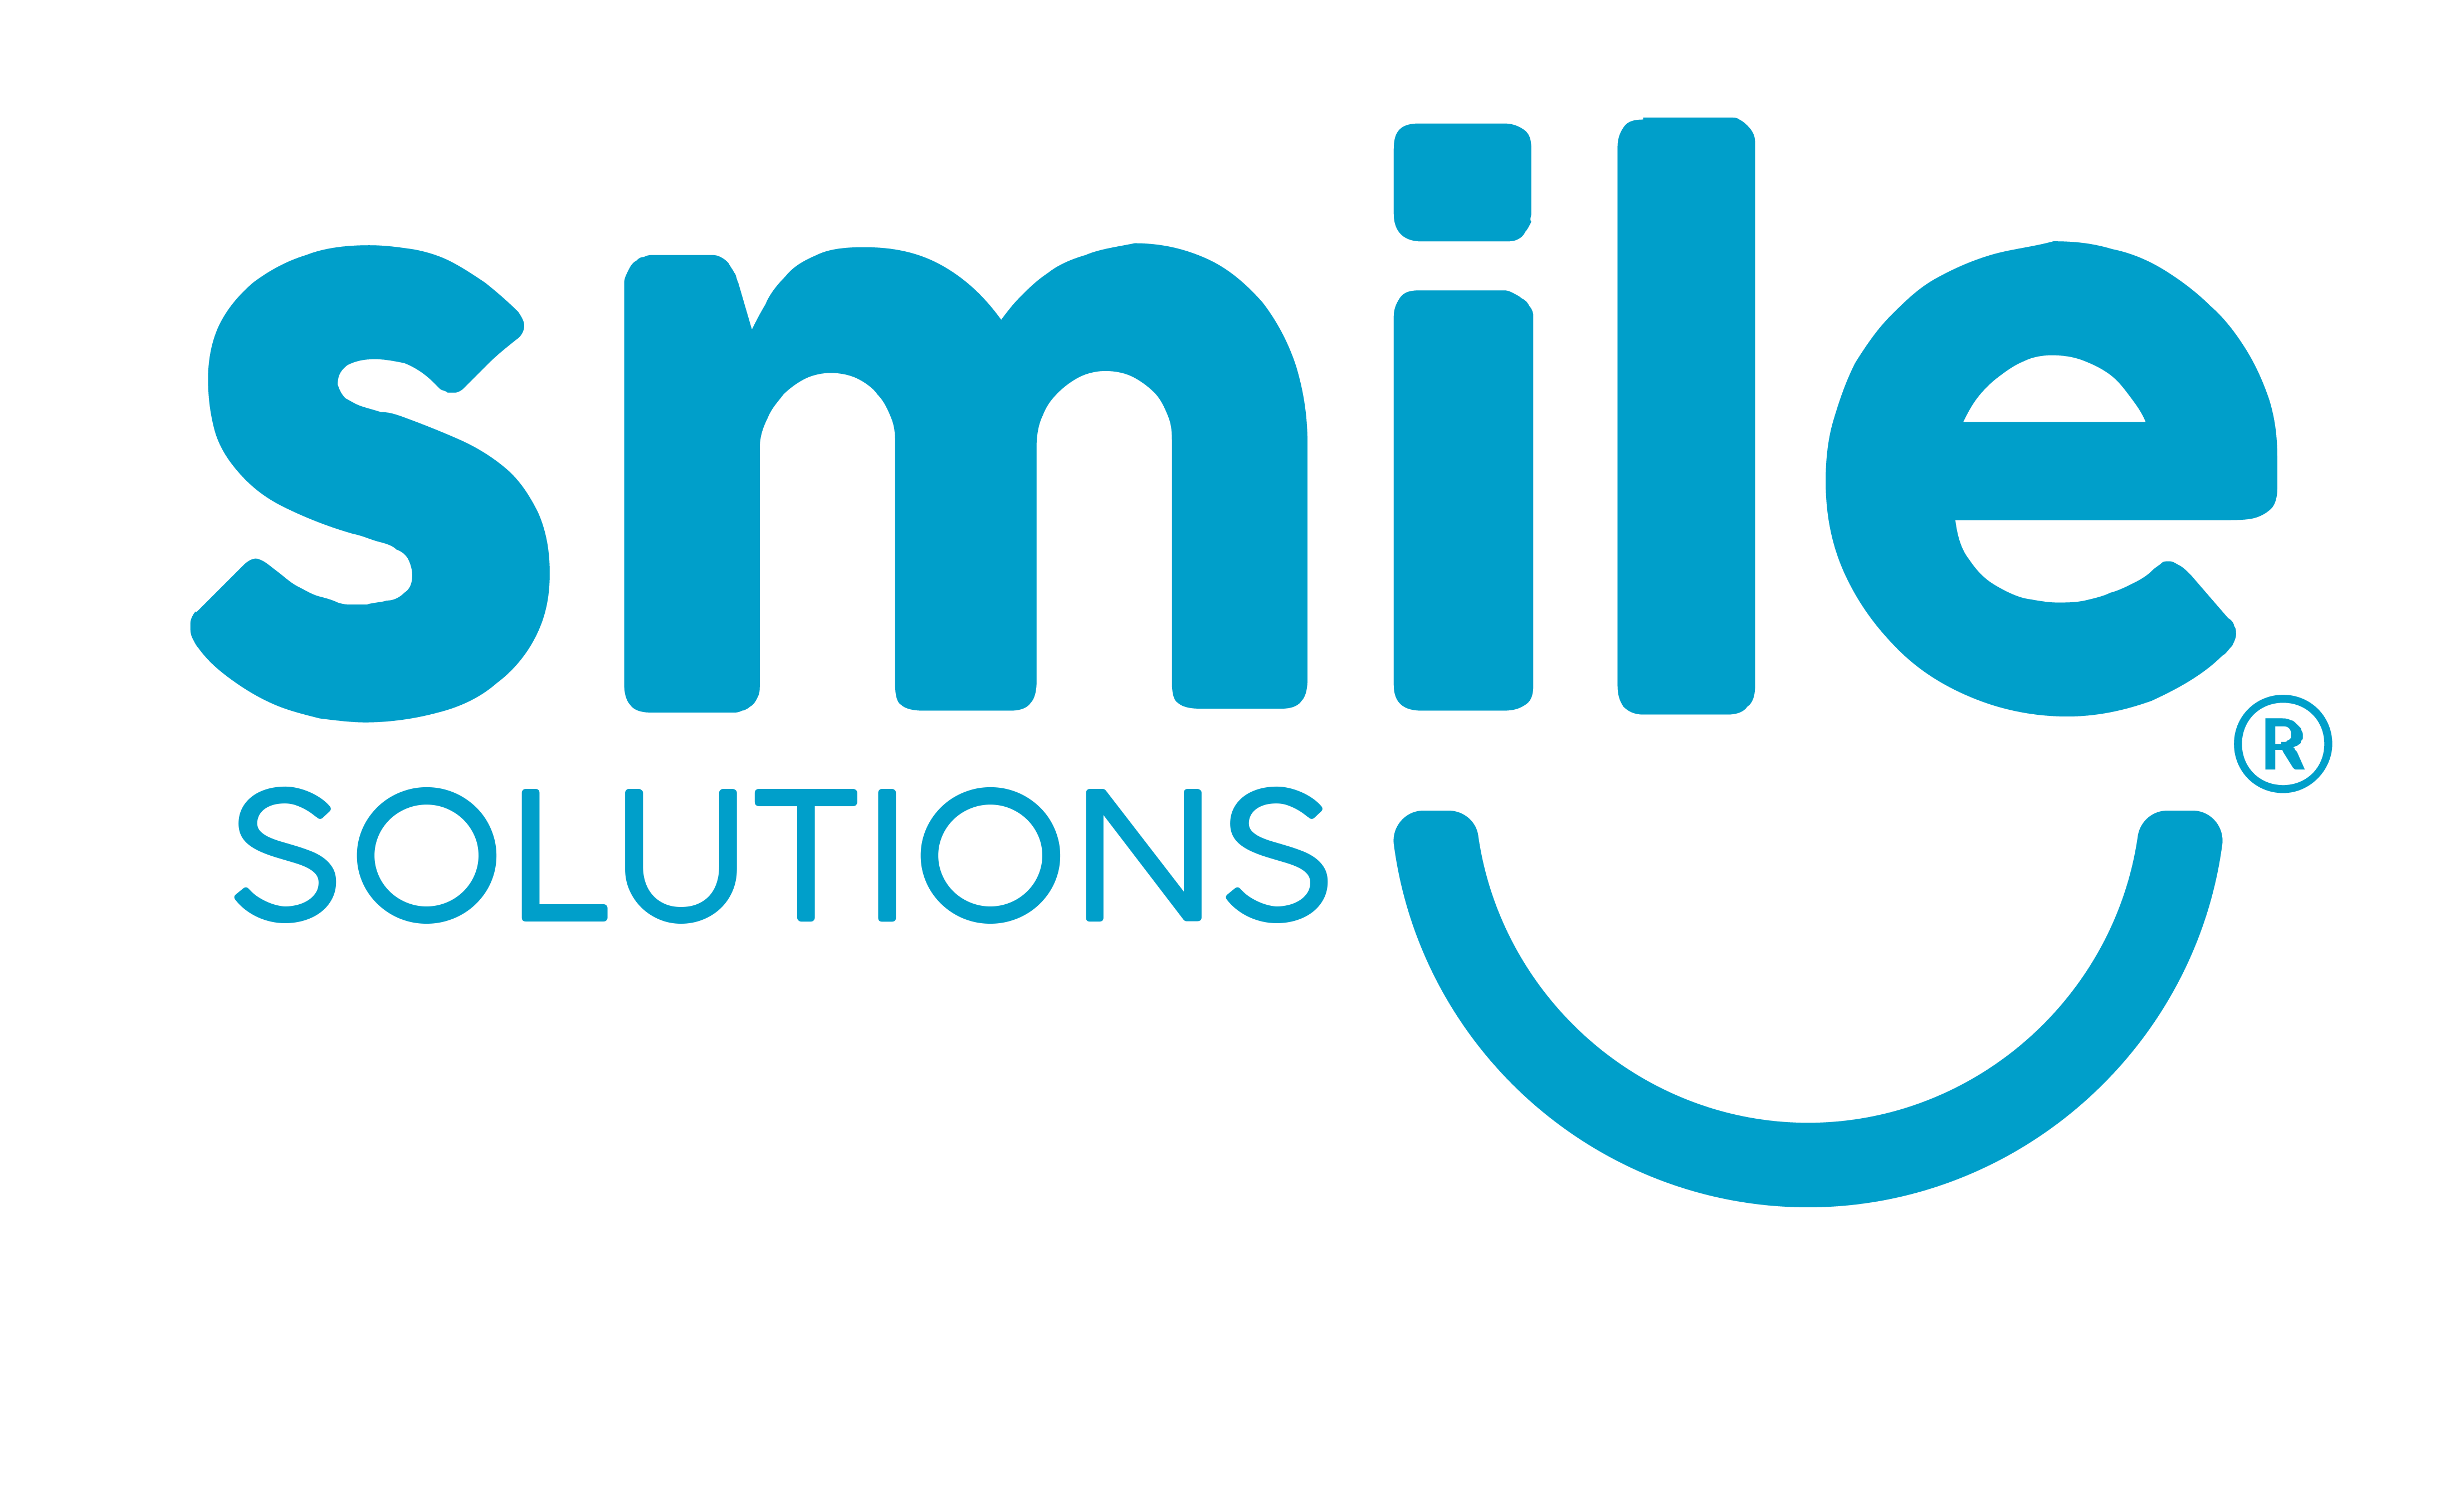 Smile Solutions S.A.S